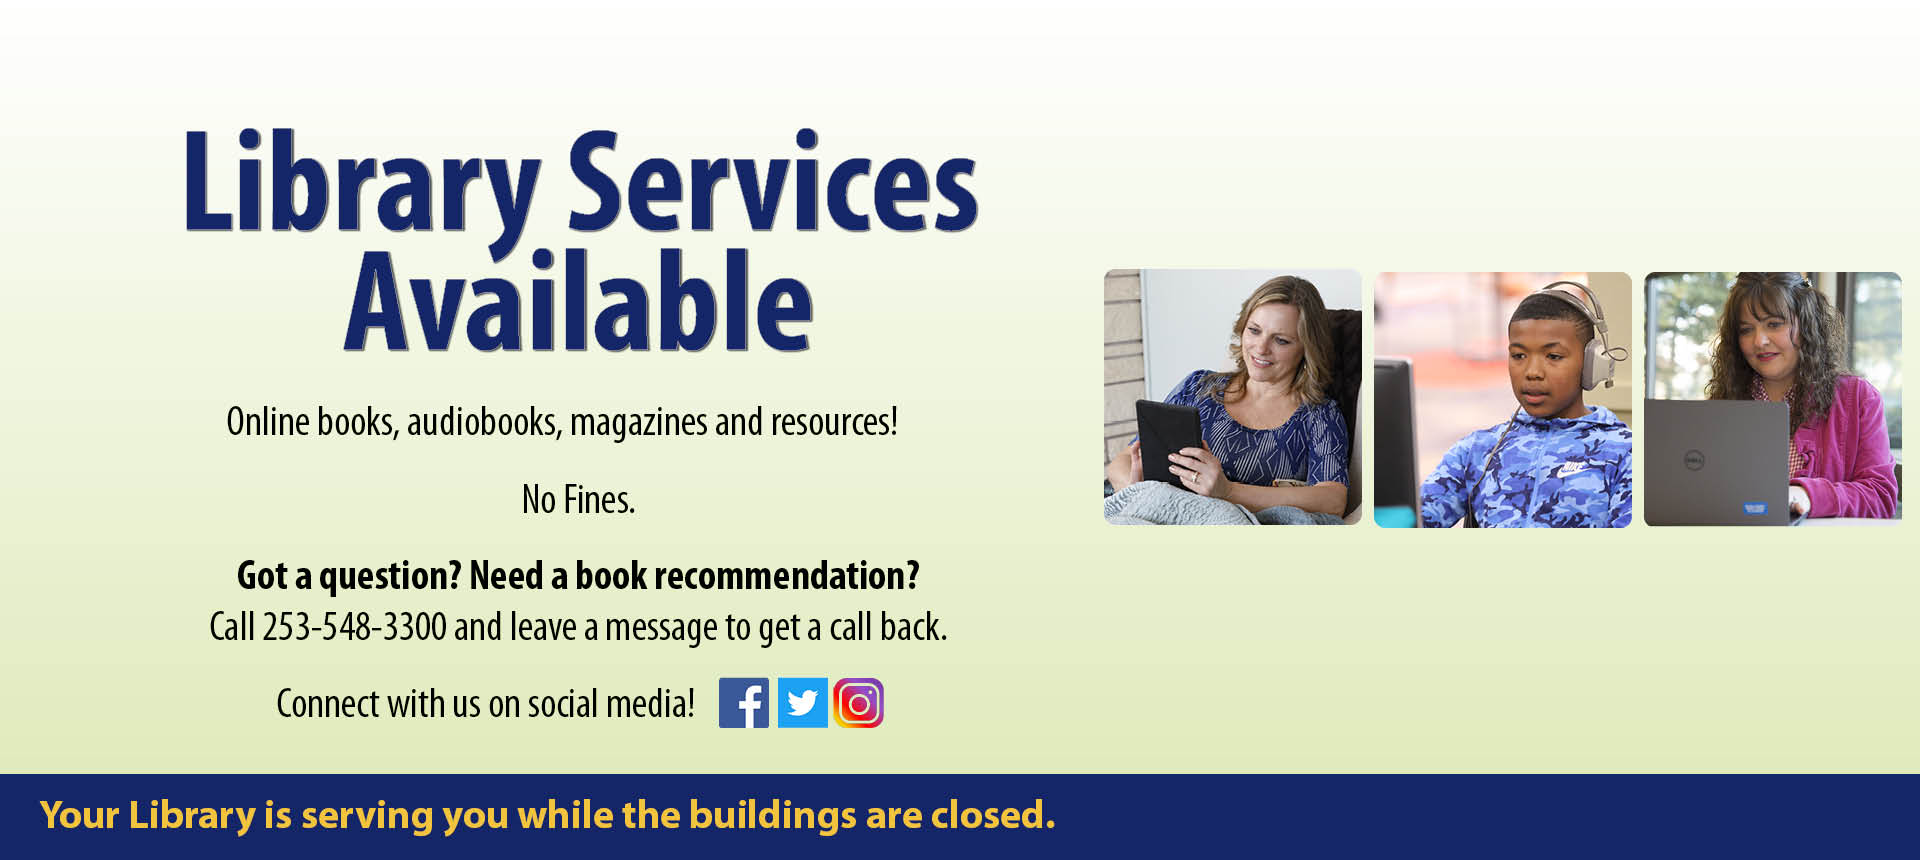 Library Services Available